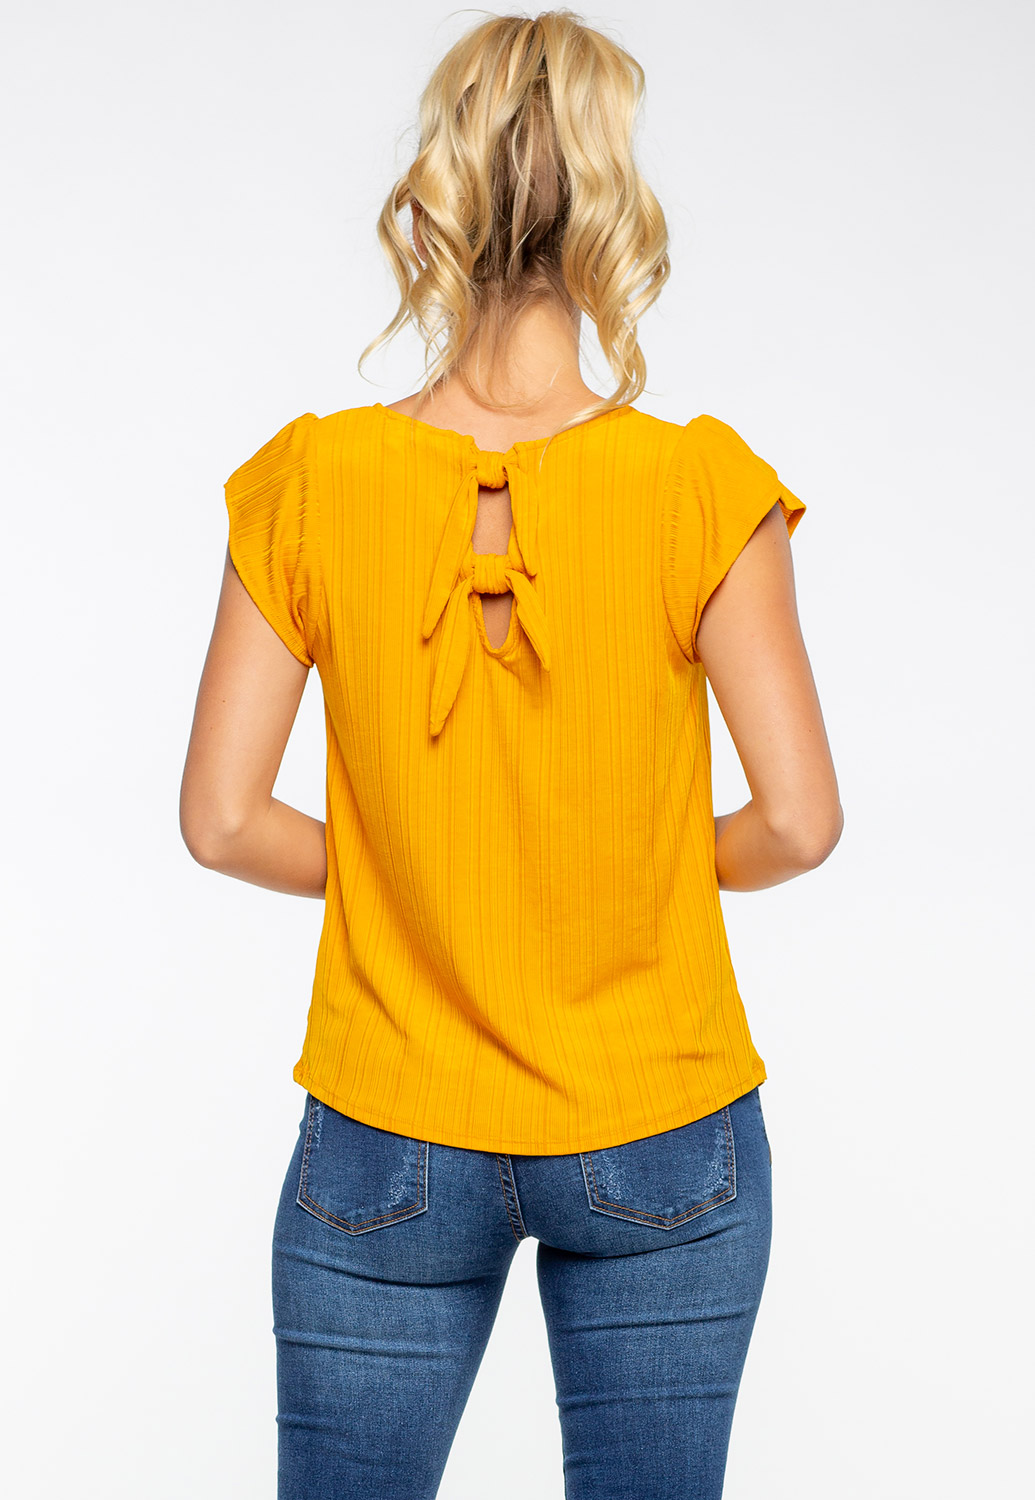 Round Neck Blouse Shirt With Double Tie Knot Back Detail